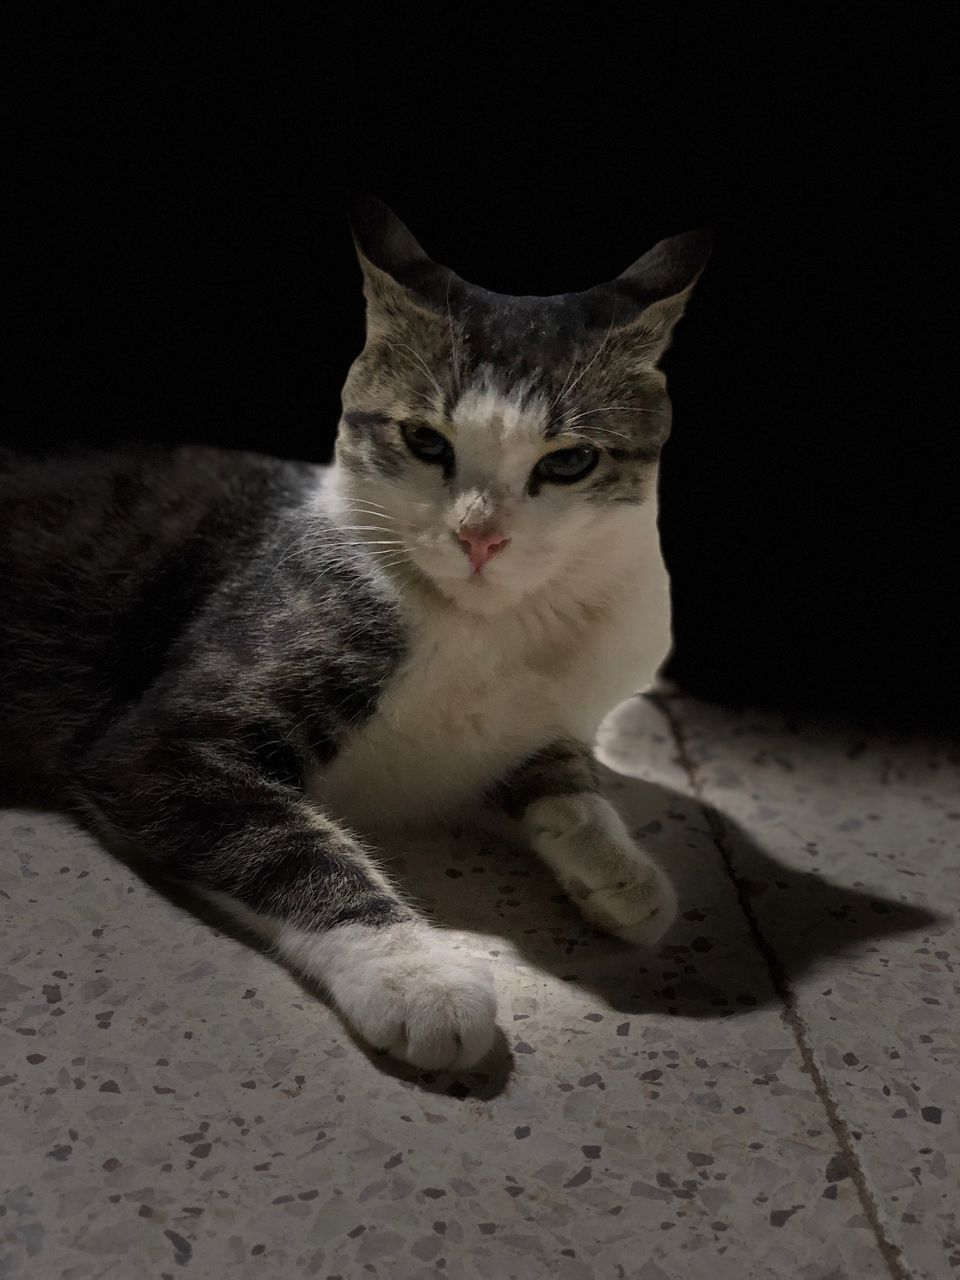 domestic, domestic animals, pets, cat, mammal, domestic cat, feline, vertebrate, one animal, indoors, portrait, no people, looking at camera, relaxation, sitting, flooring, looking, whisker, black background